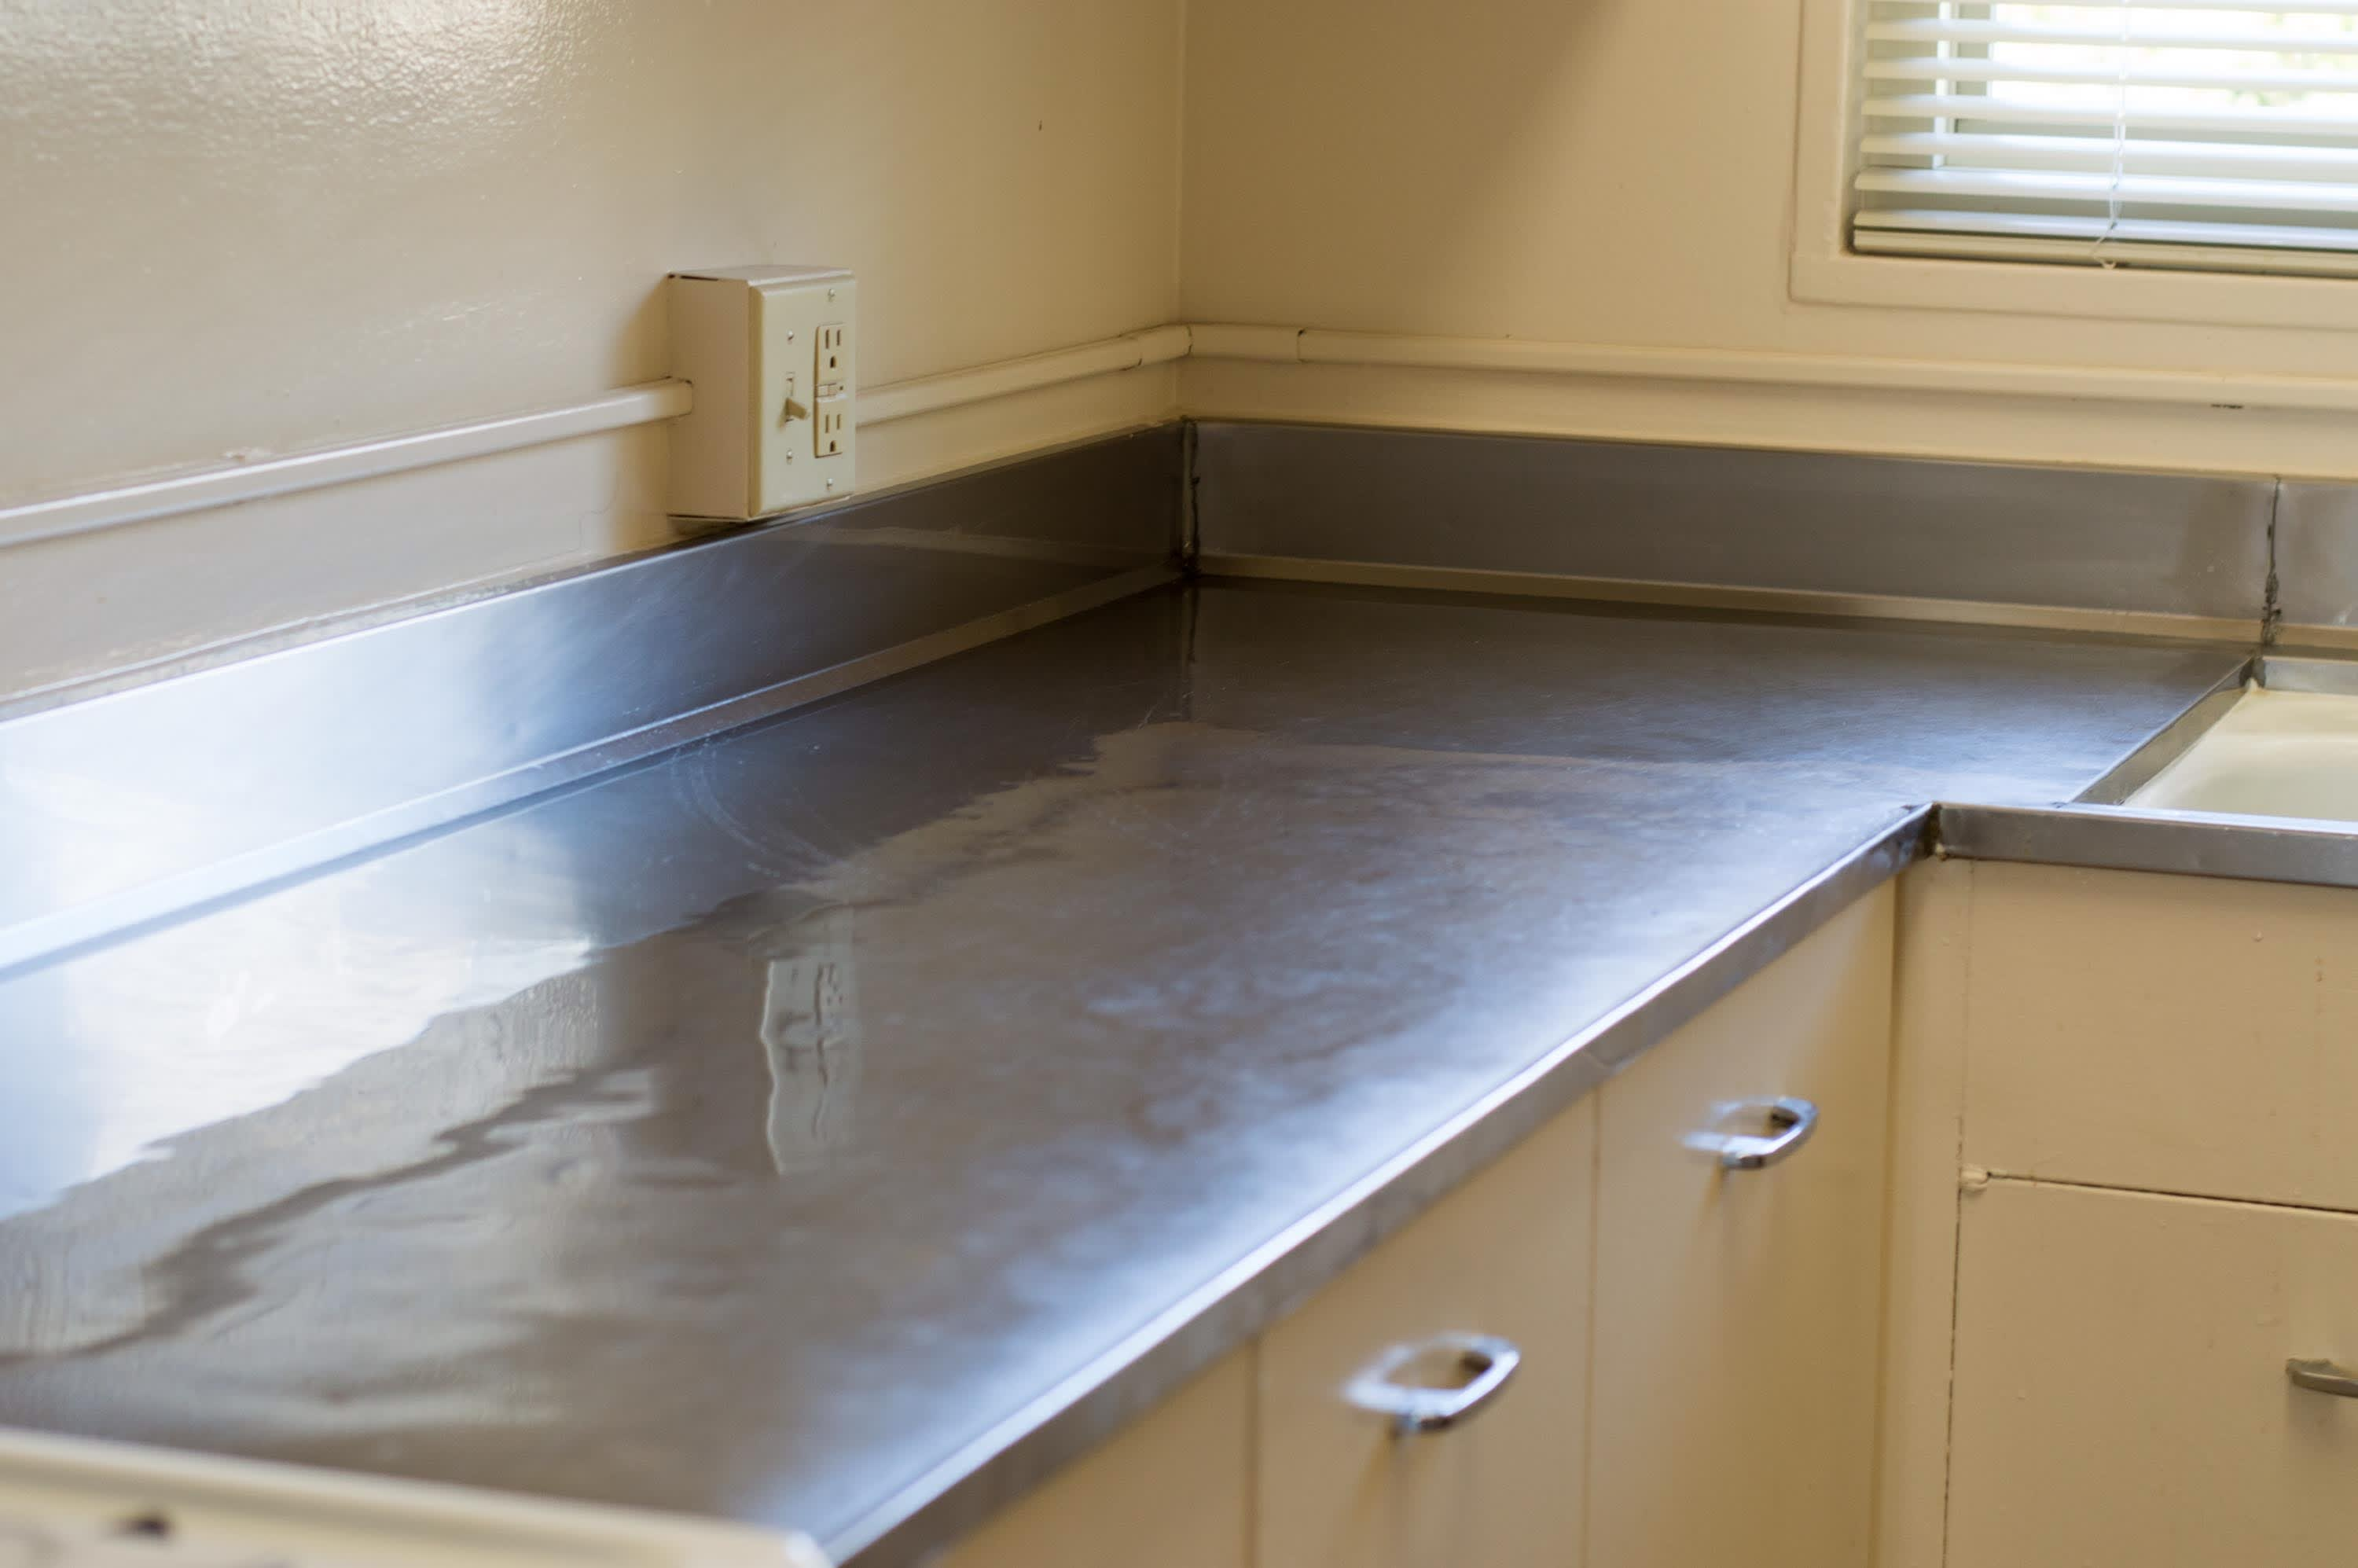 How To Clean Stainless Steel Countertops To a Shiny, Streak ...